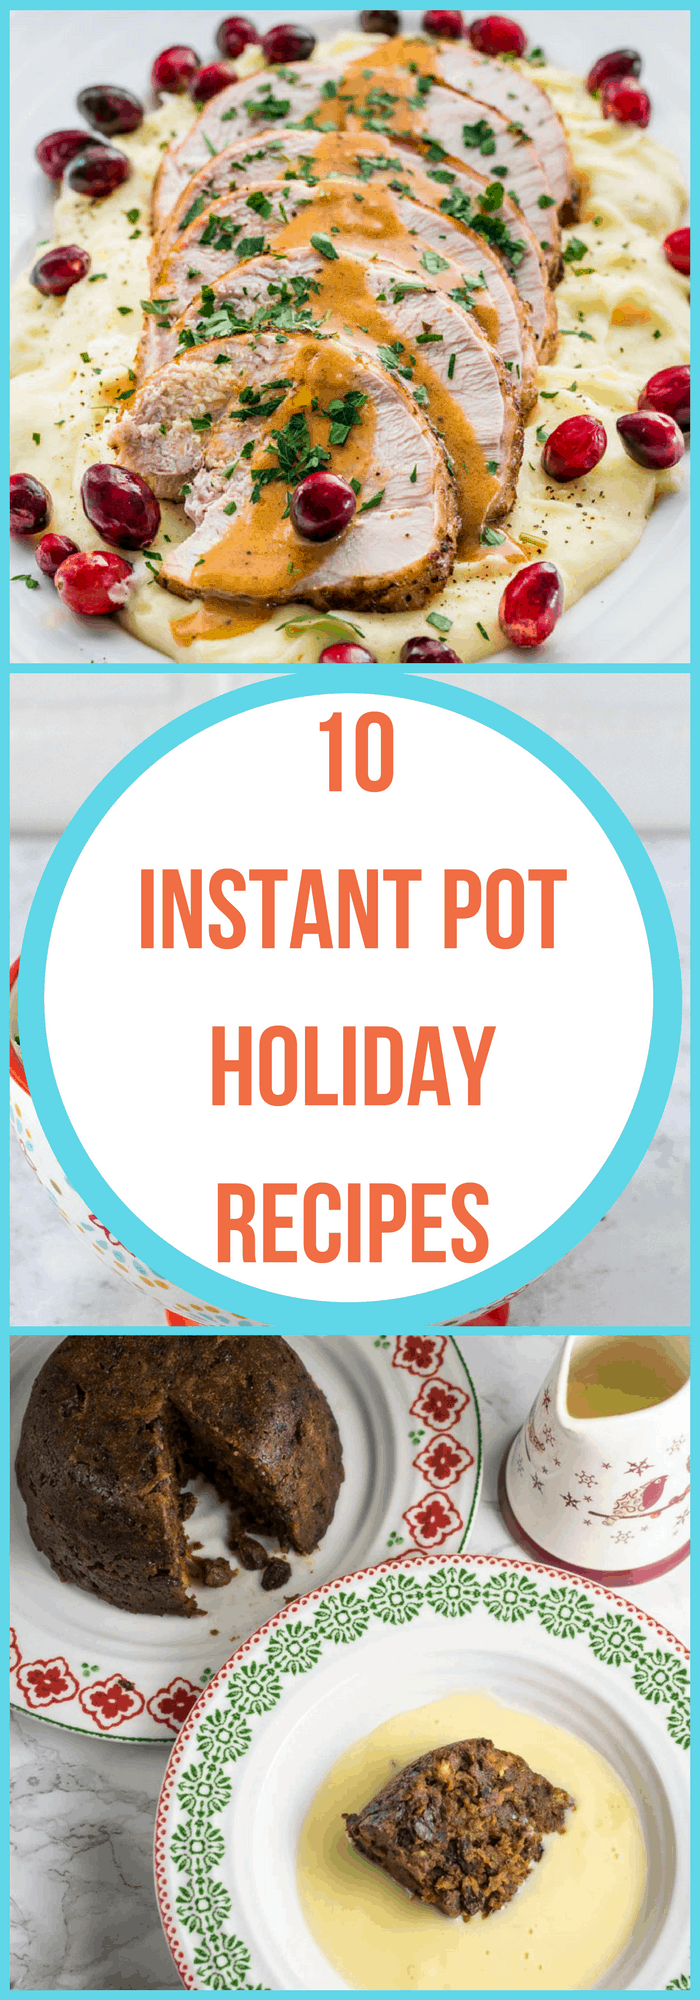 Cooking-10 Instant Pot Holiday Recipes--The Organized Mom